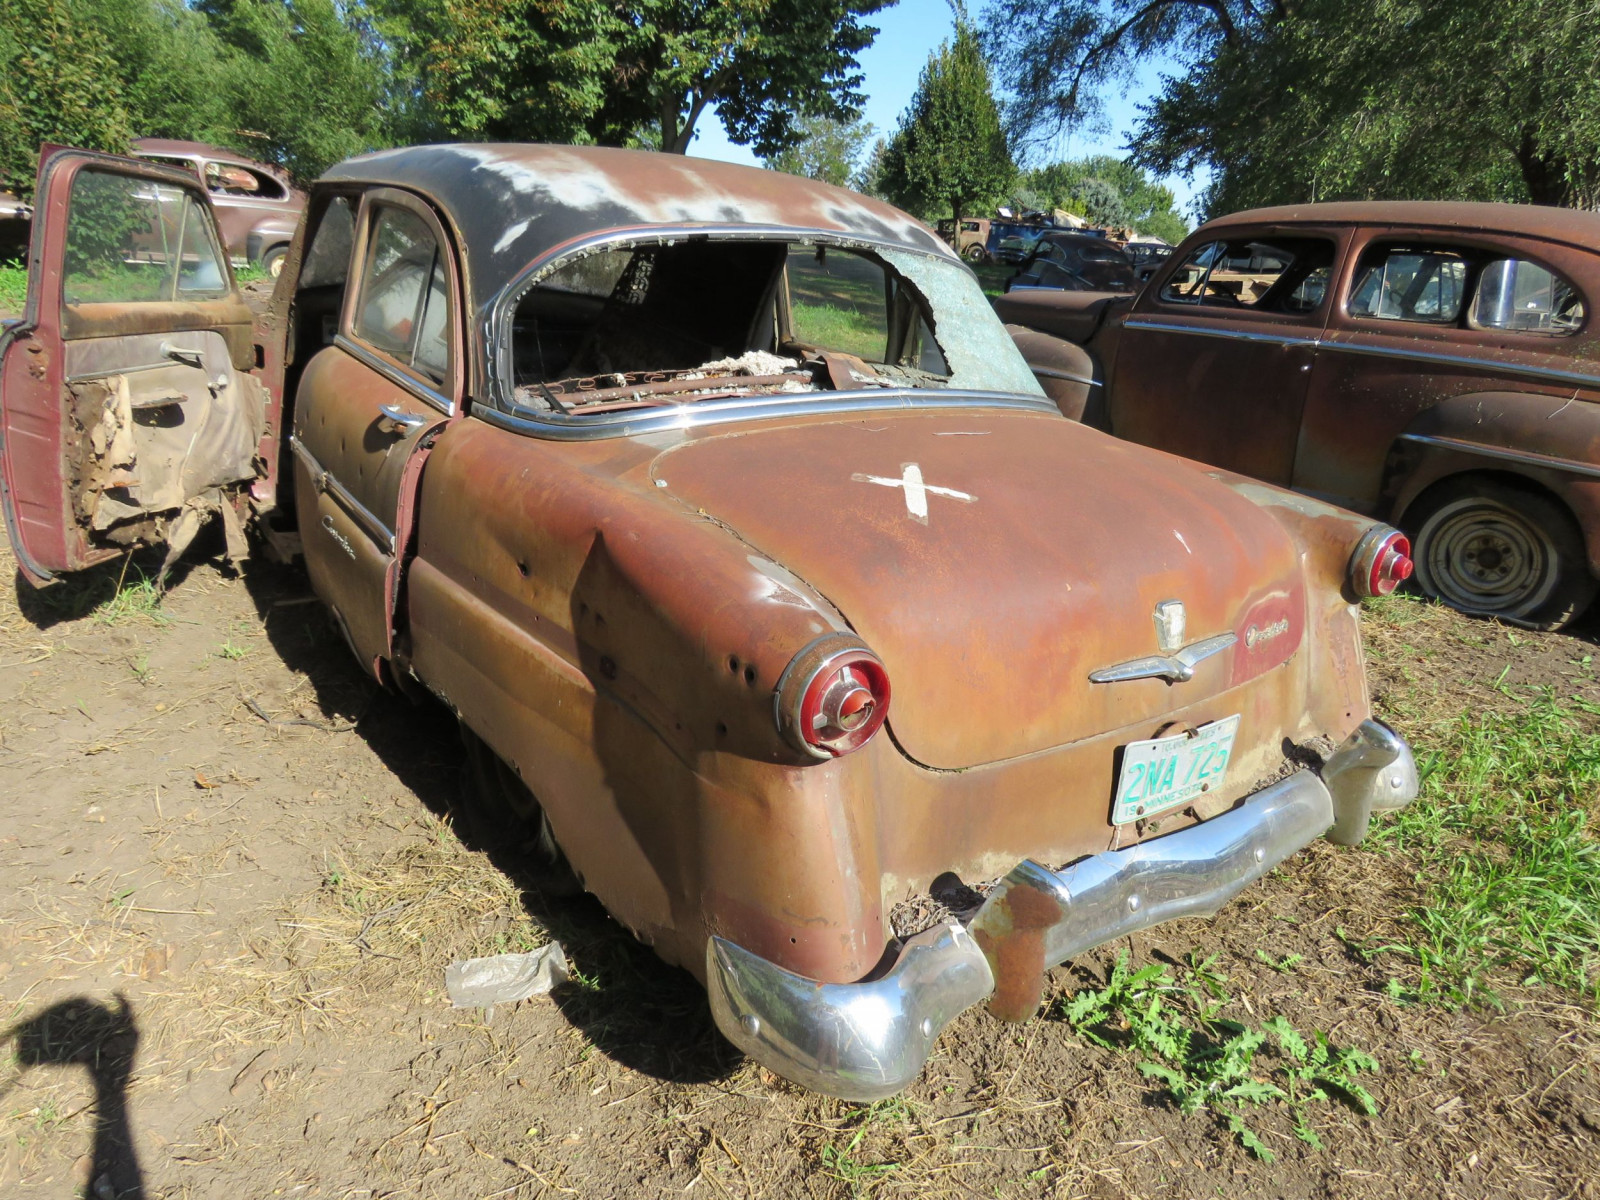 1954 Ford Customline 4dr Sedan for Project or Parts - Image 3